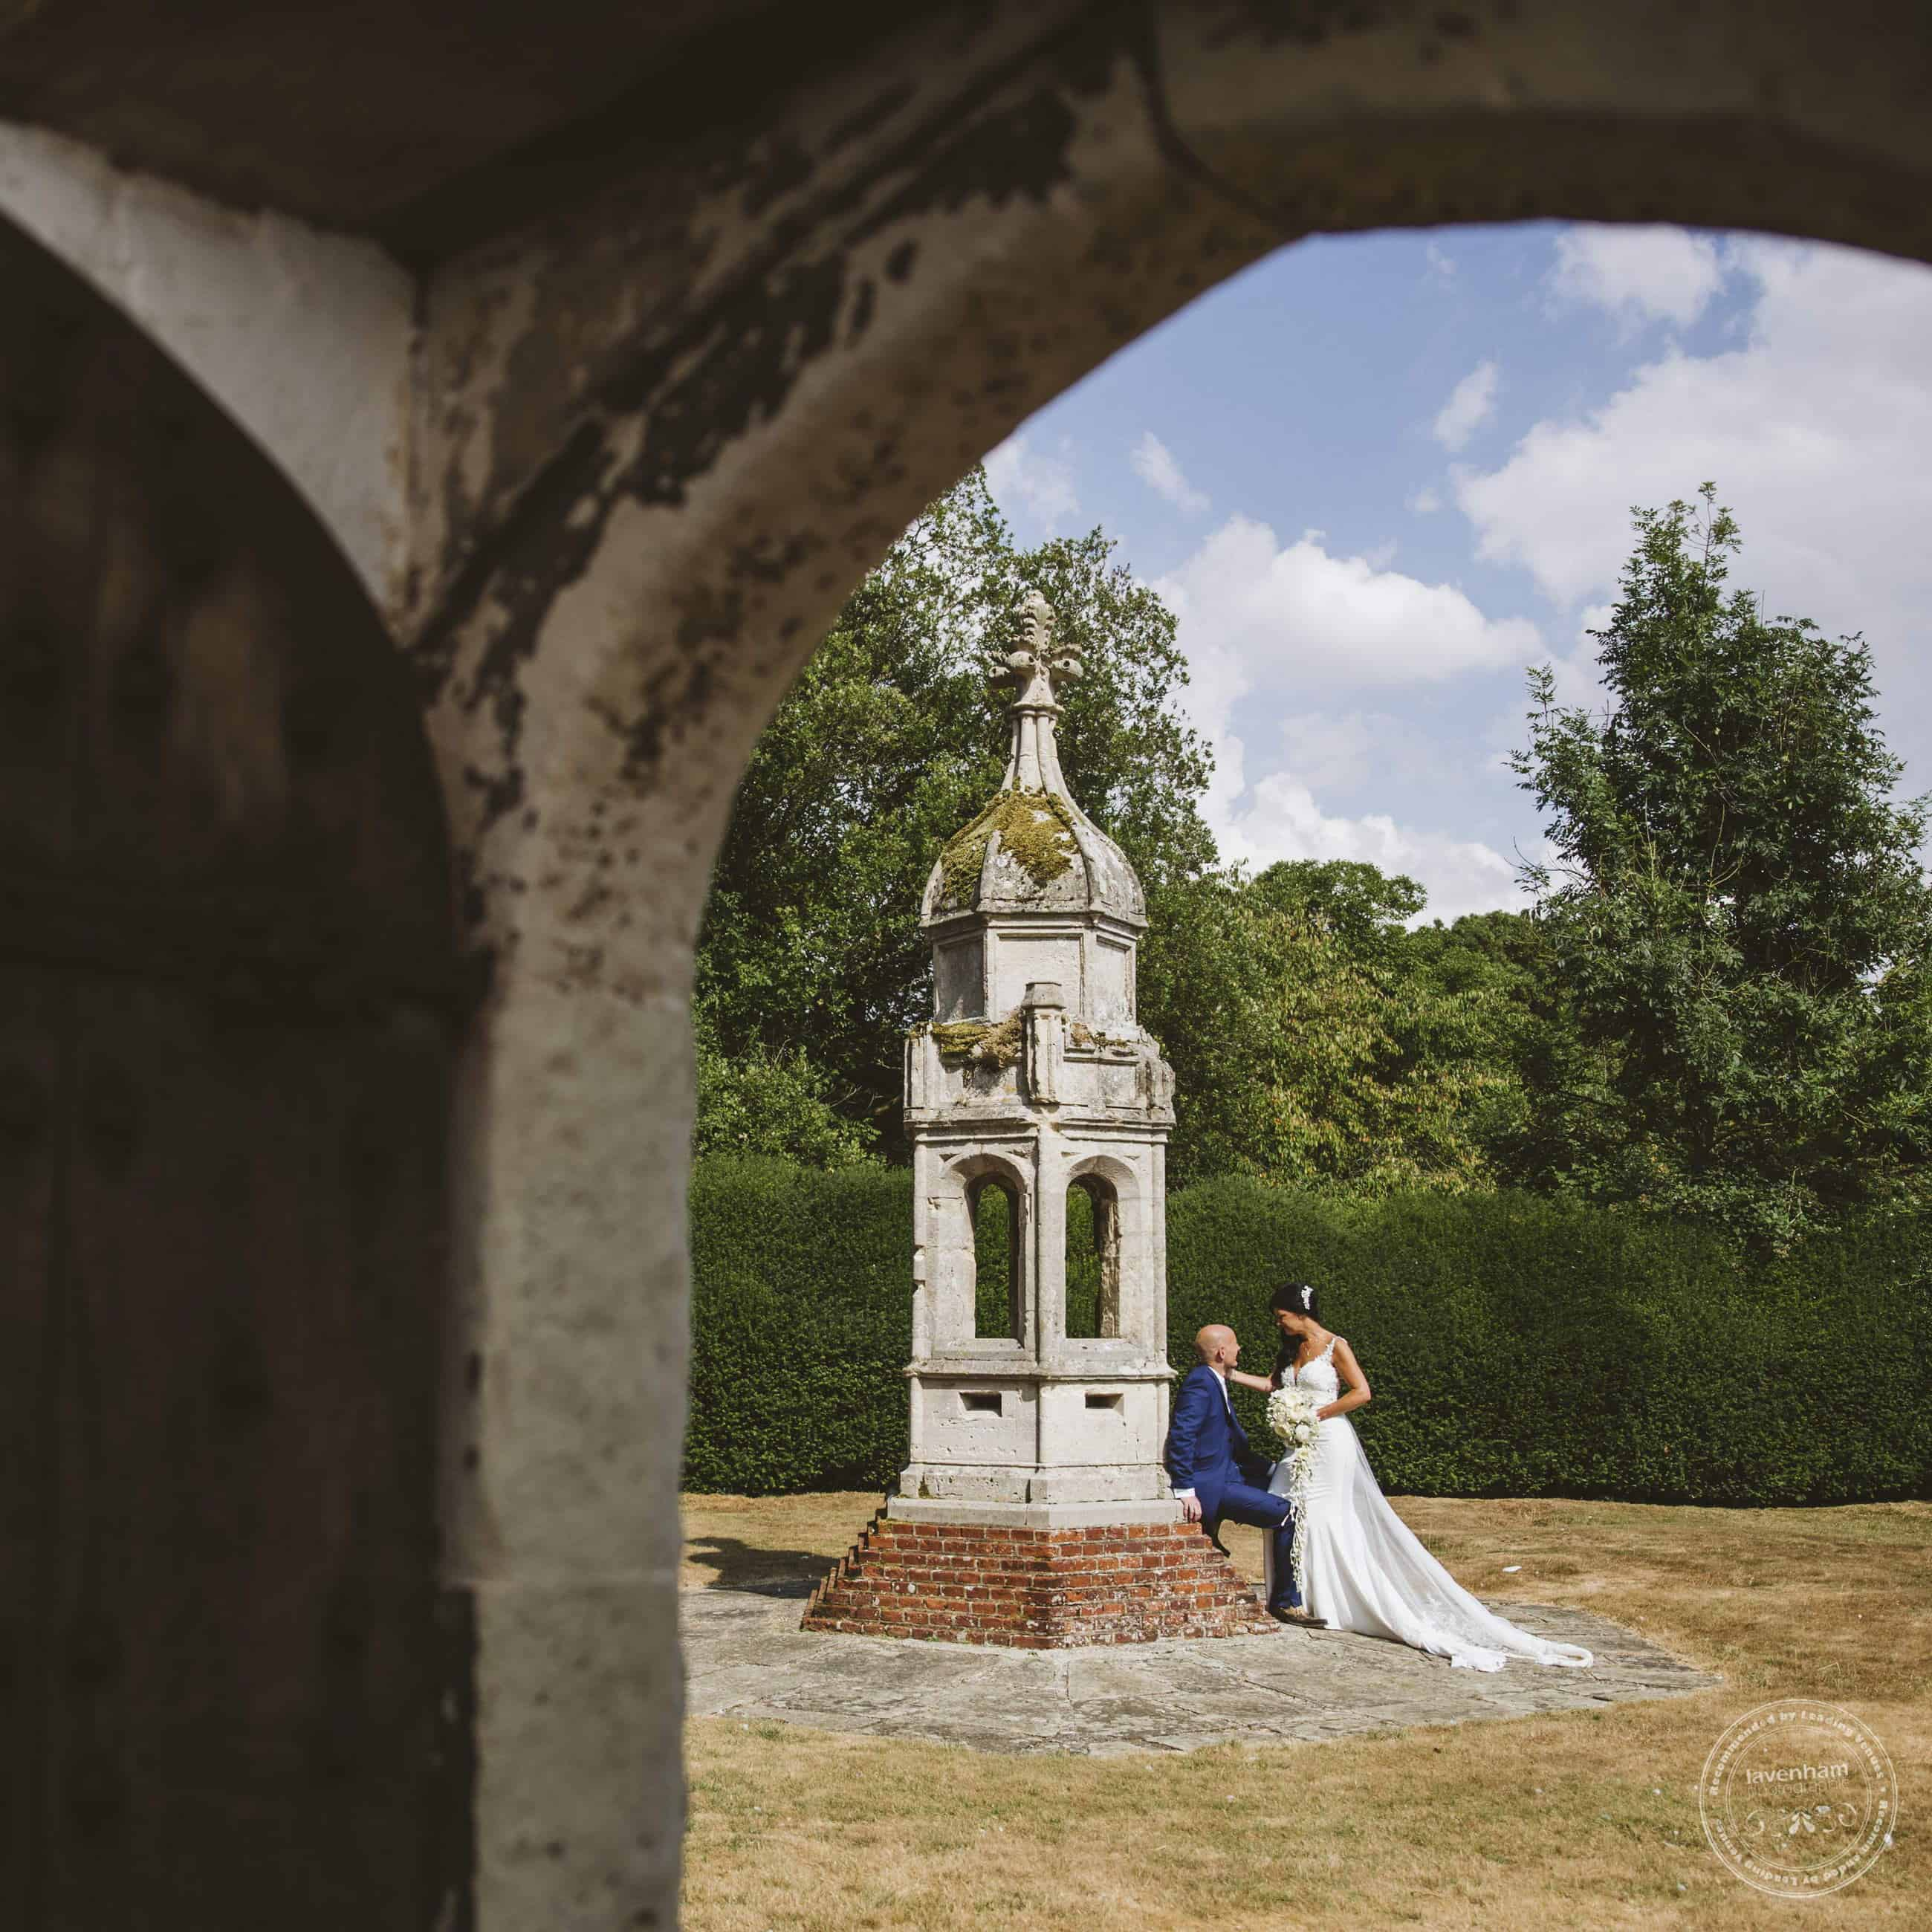 Framing a wedding photograph through a doorway arch